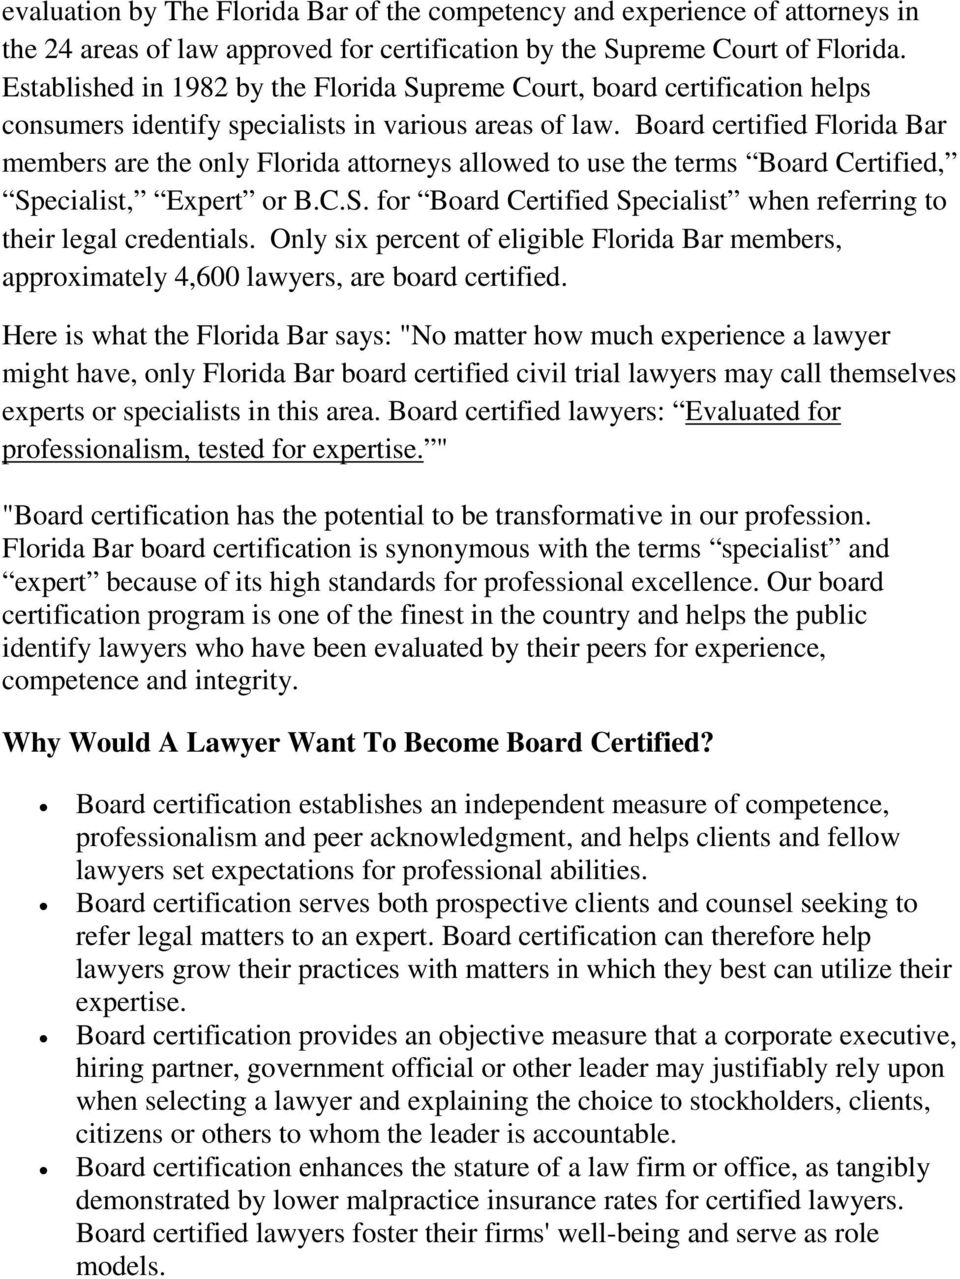 Board certified Florida Bar members are the only Florida attorneys allowed to use the terms Board Certified, Specialist, Expert or B.C.S. for Board Certified Specialist when referring to their legal credentials.